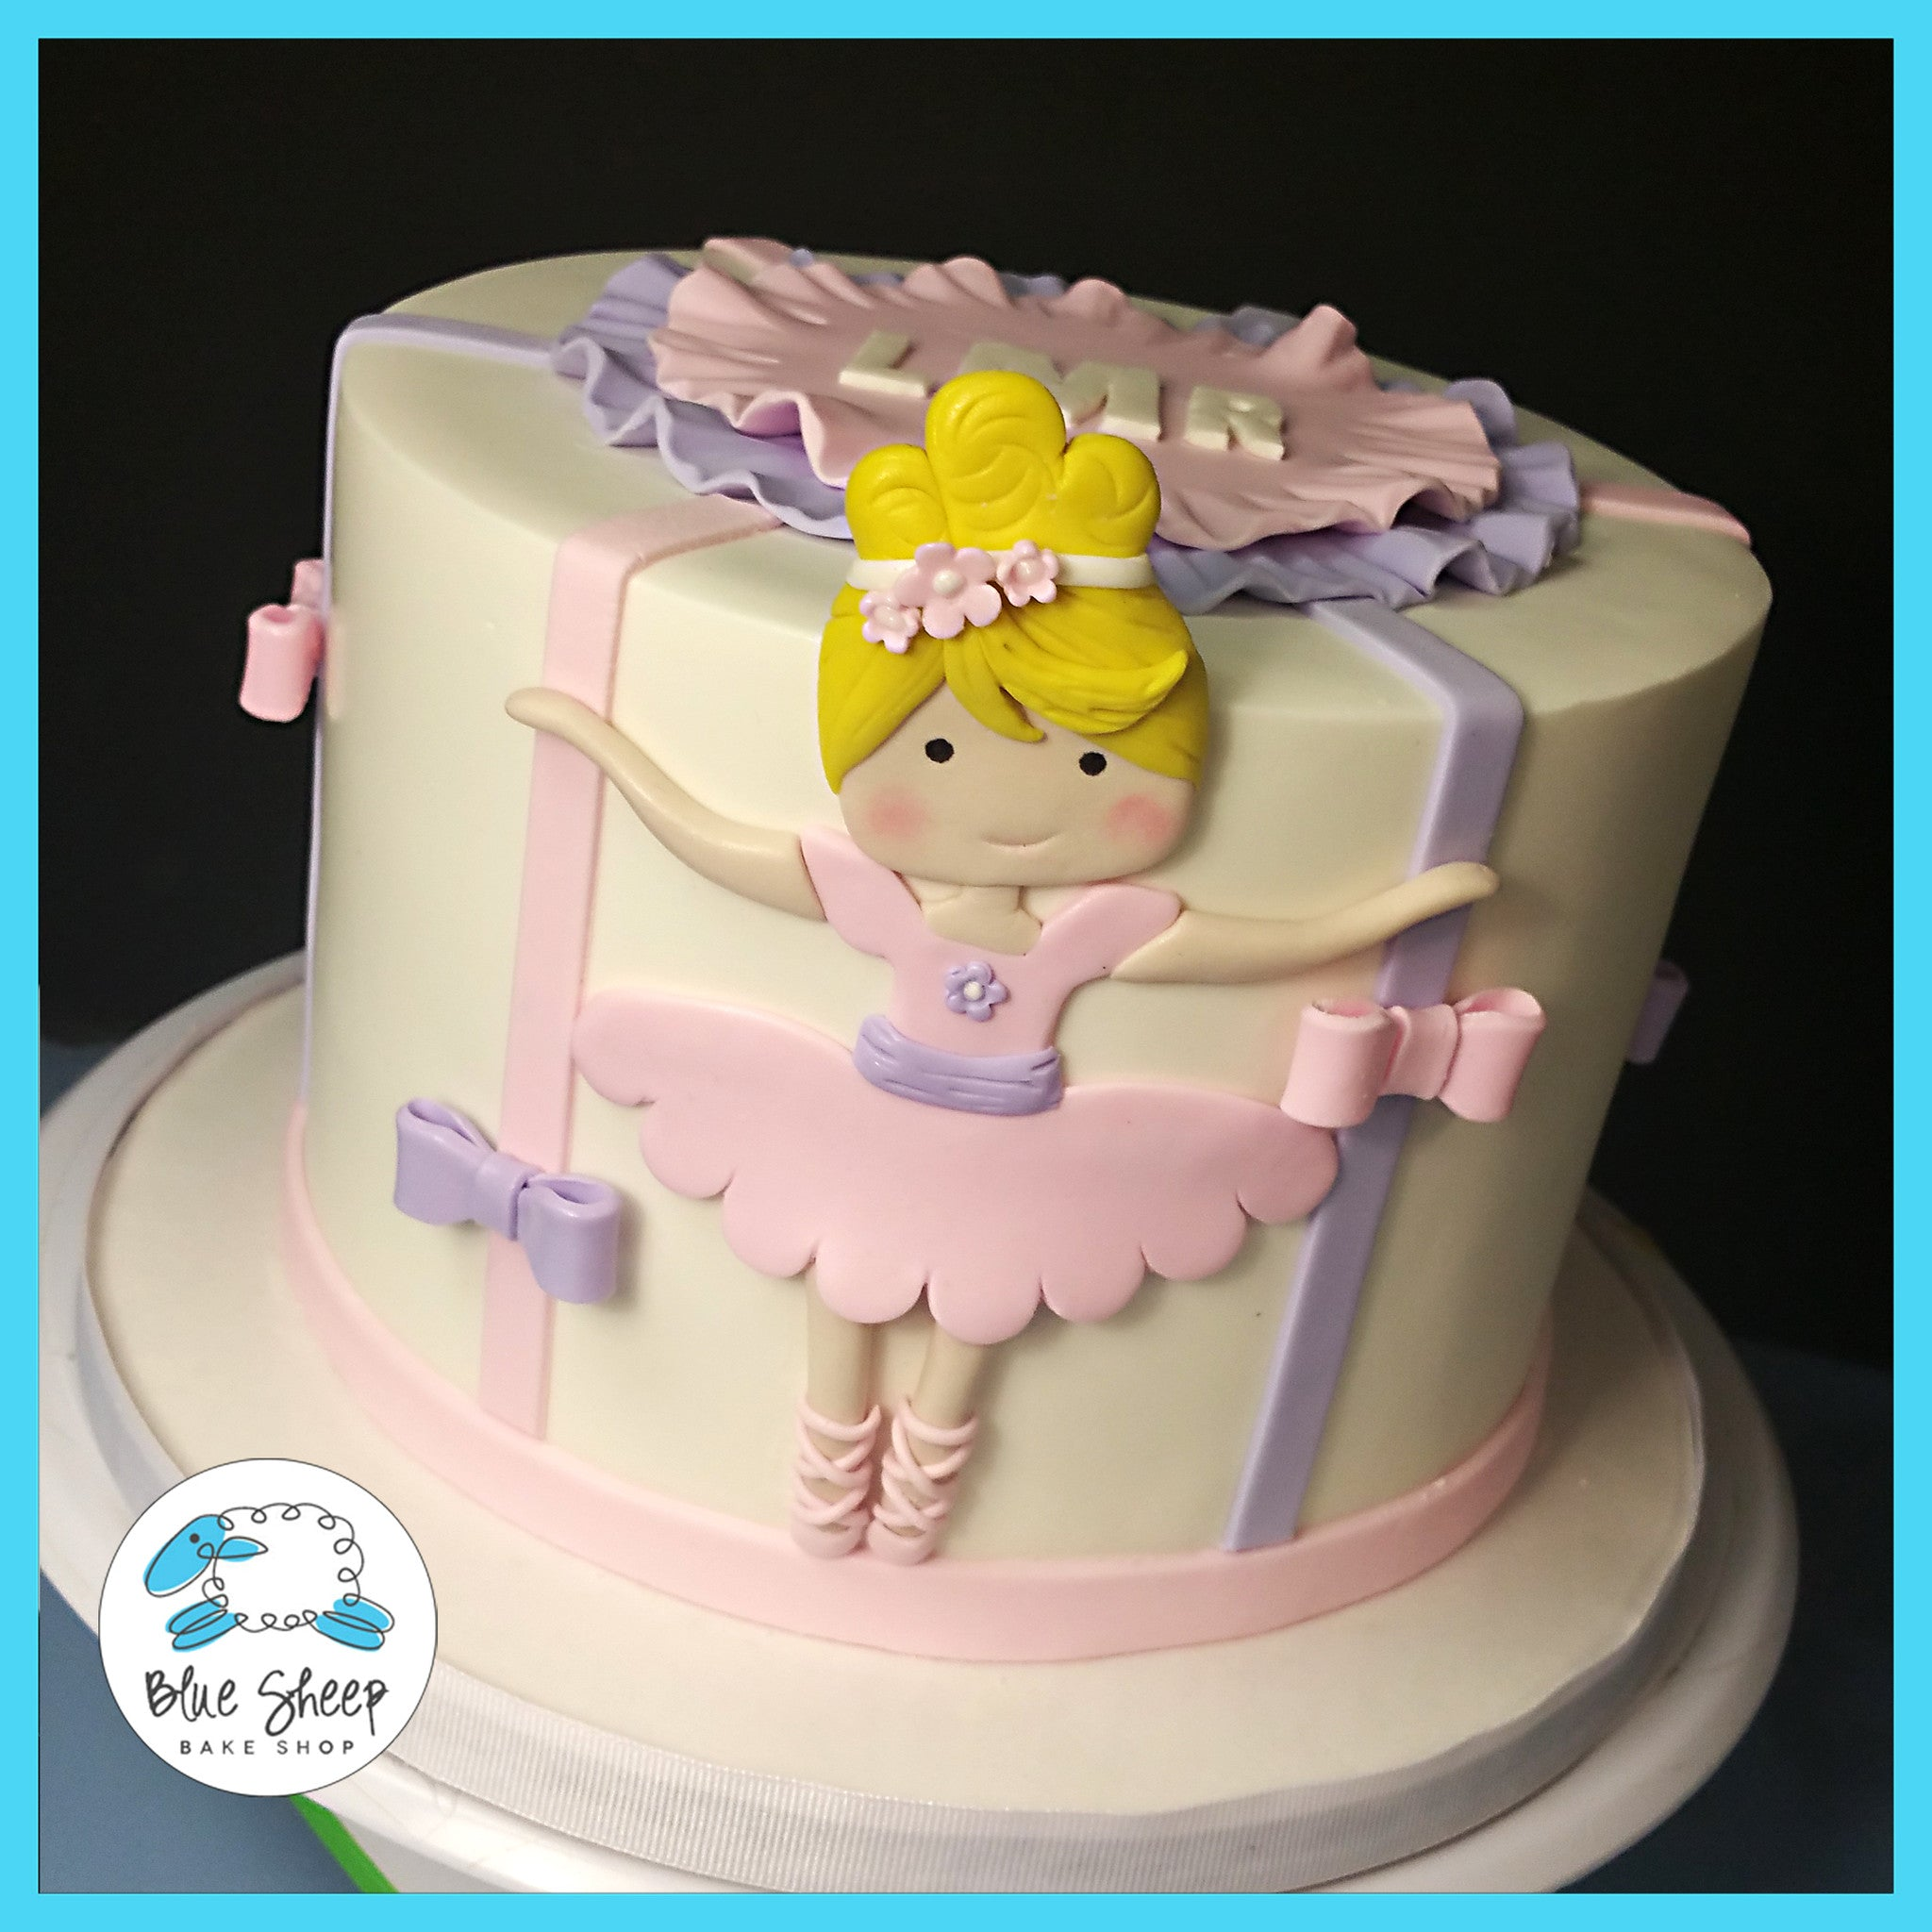 Ballerina Birthday Cake Blue Sheep Bake Shop